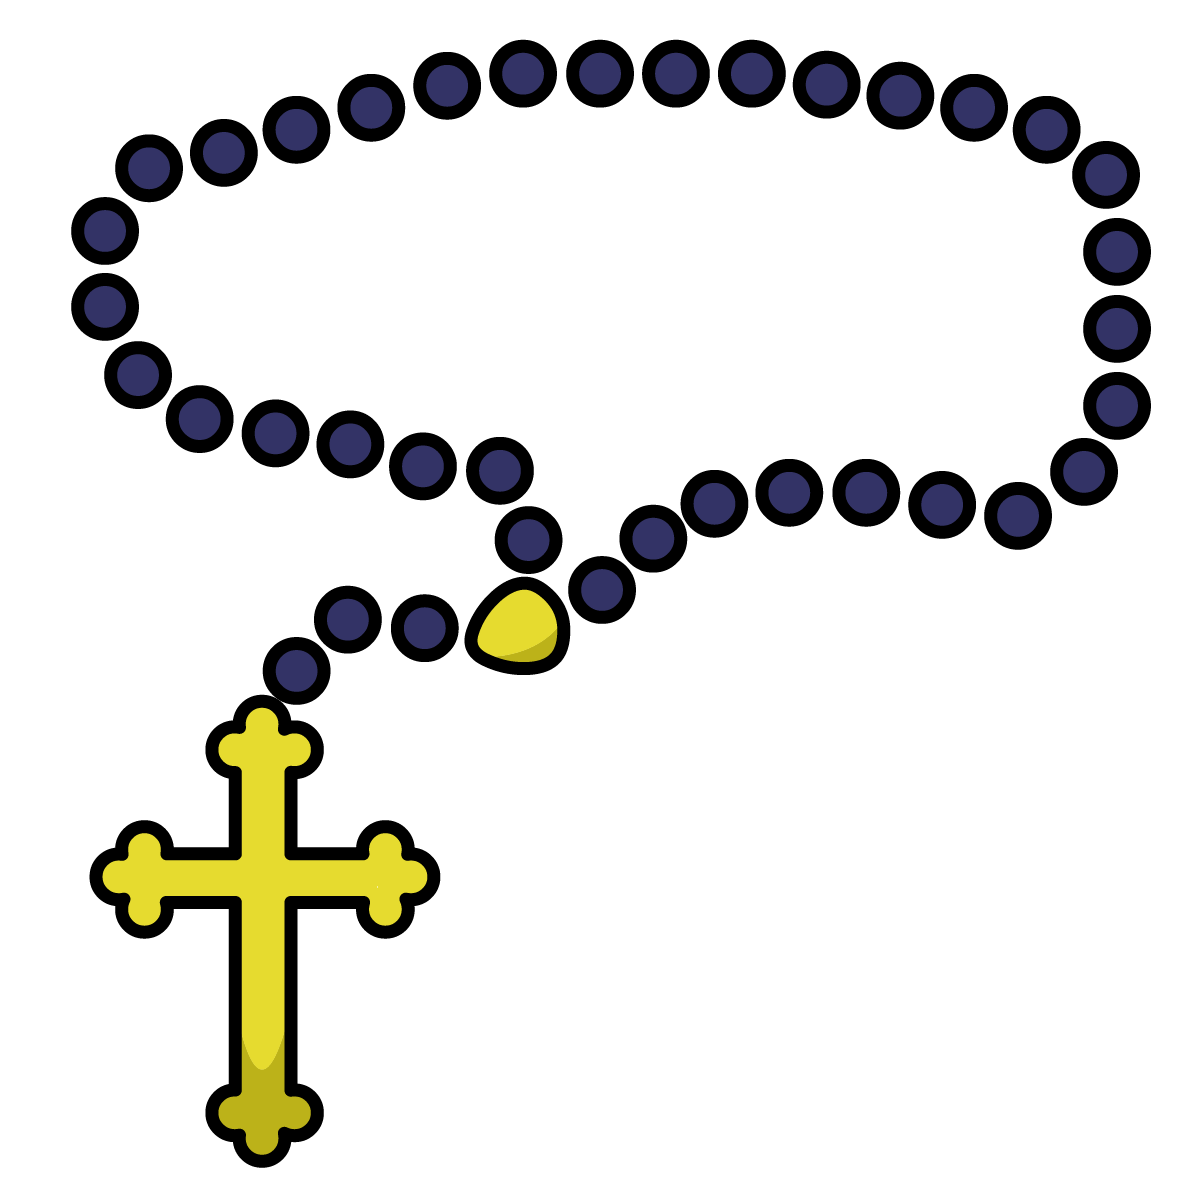 Cross and rosary clipart clip art royalty free library Pope Emojis Just Became a Thing. - LifeTeen.com for Catholic Youth clip art royalty free library